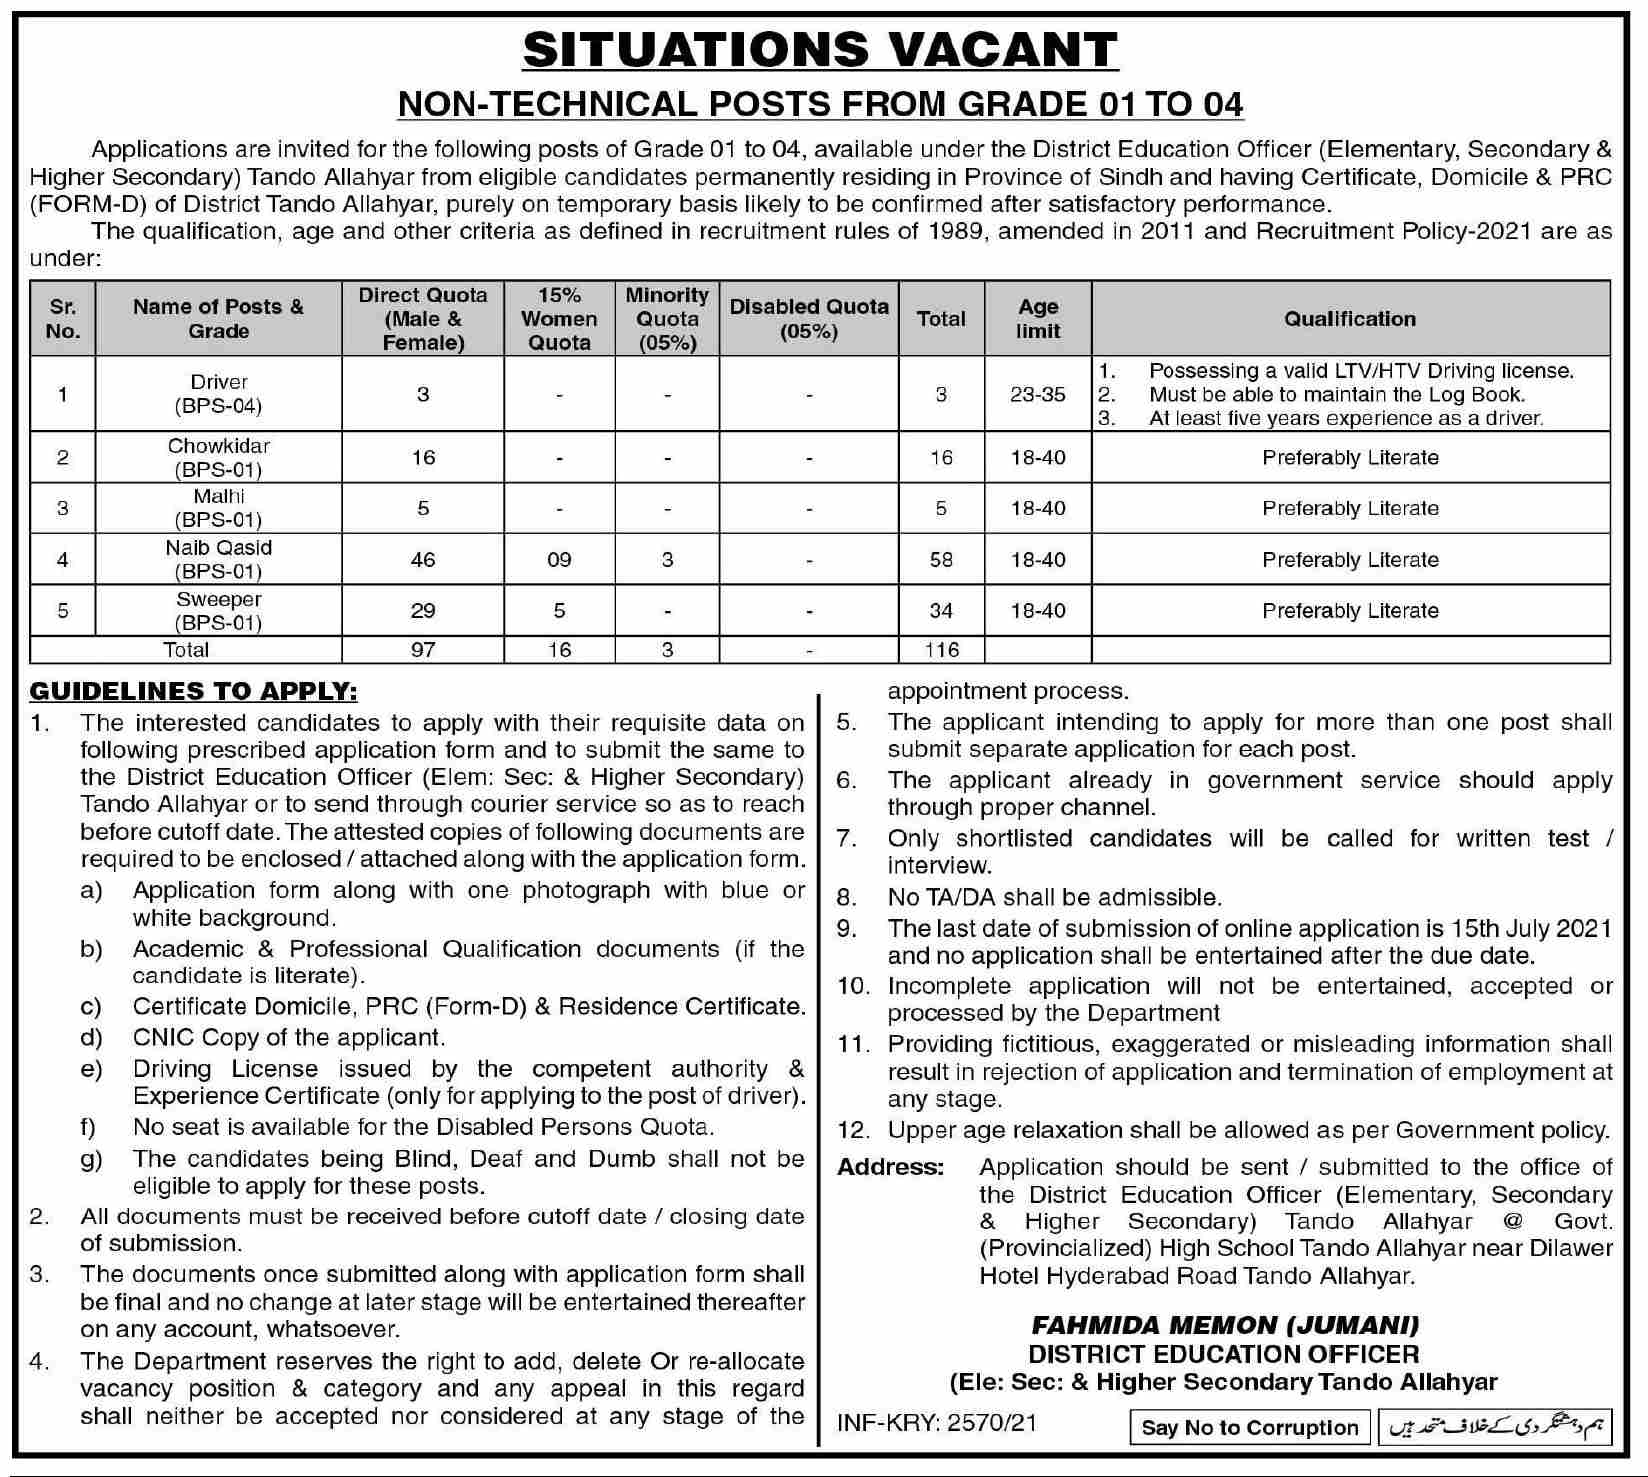 Elementary Secondary & Higher Secondary School Department Sindh Lahore Jobs 2021 in Pakistan